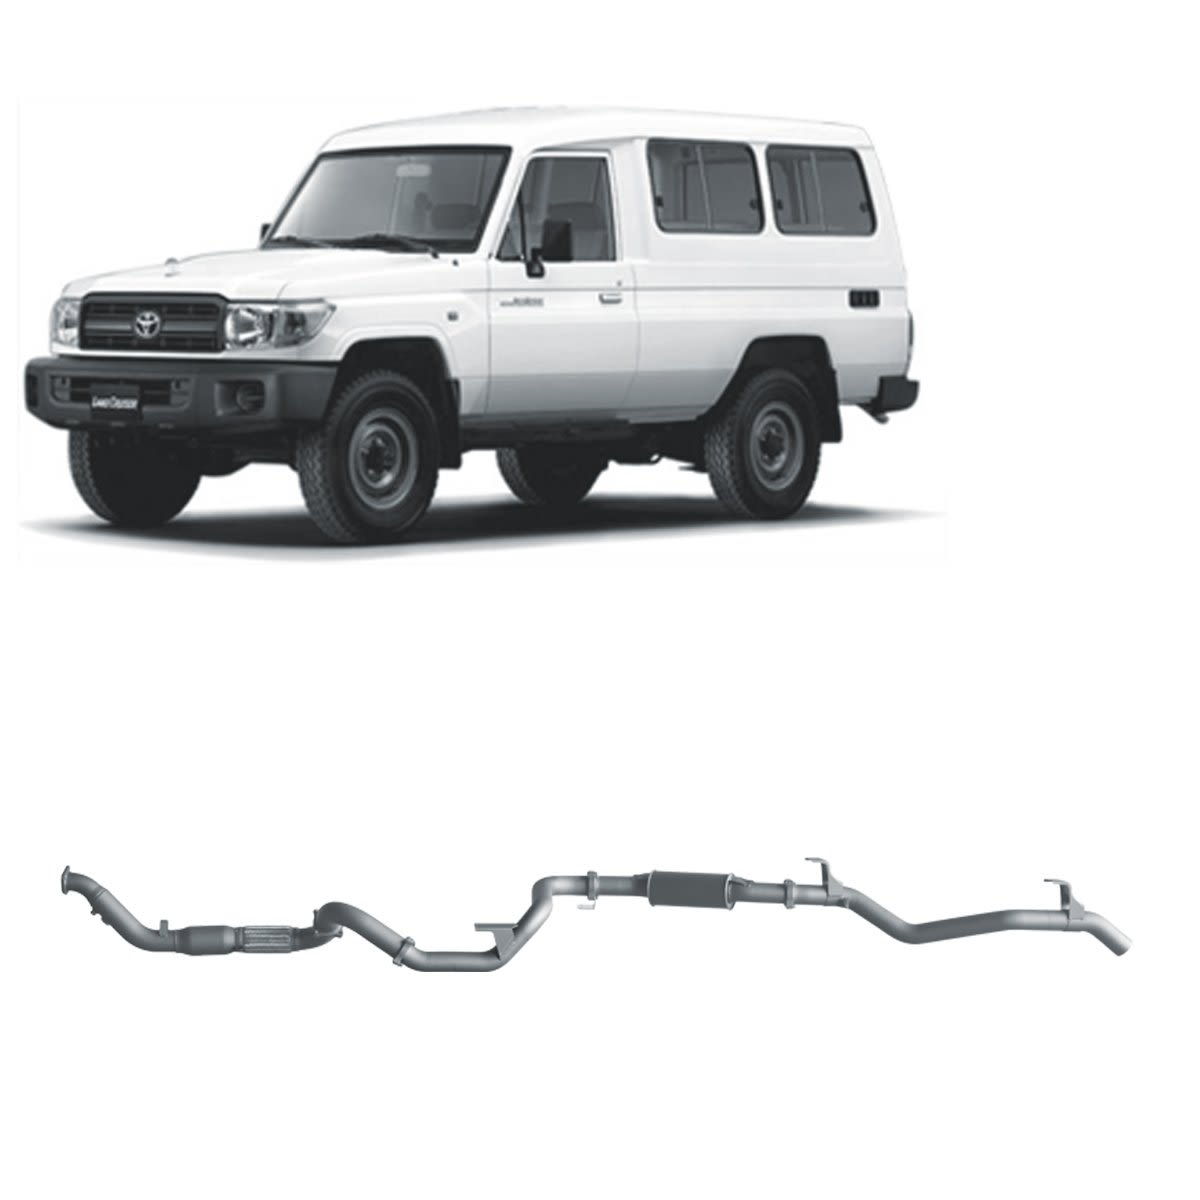 Redback Extreme Duty Exhaust to suit Toyota Landcruiser 78 Series 4.2L TD (01/2001 - 01/2007)